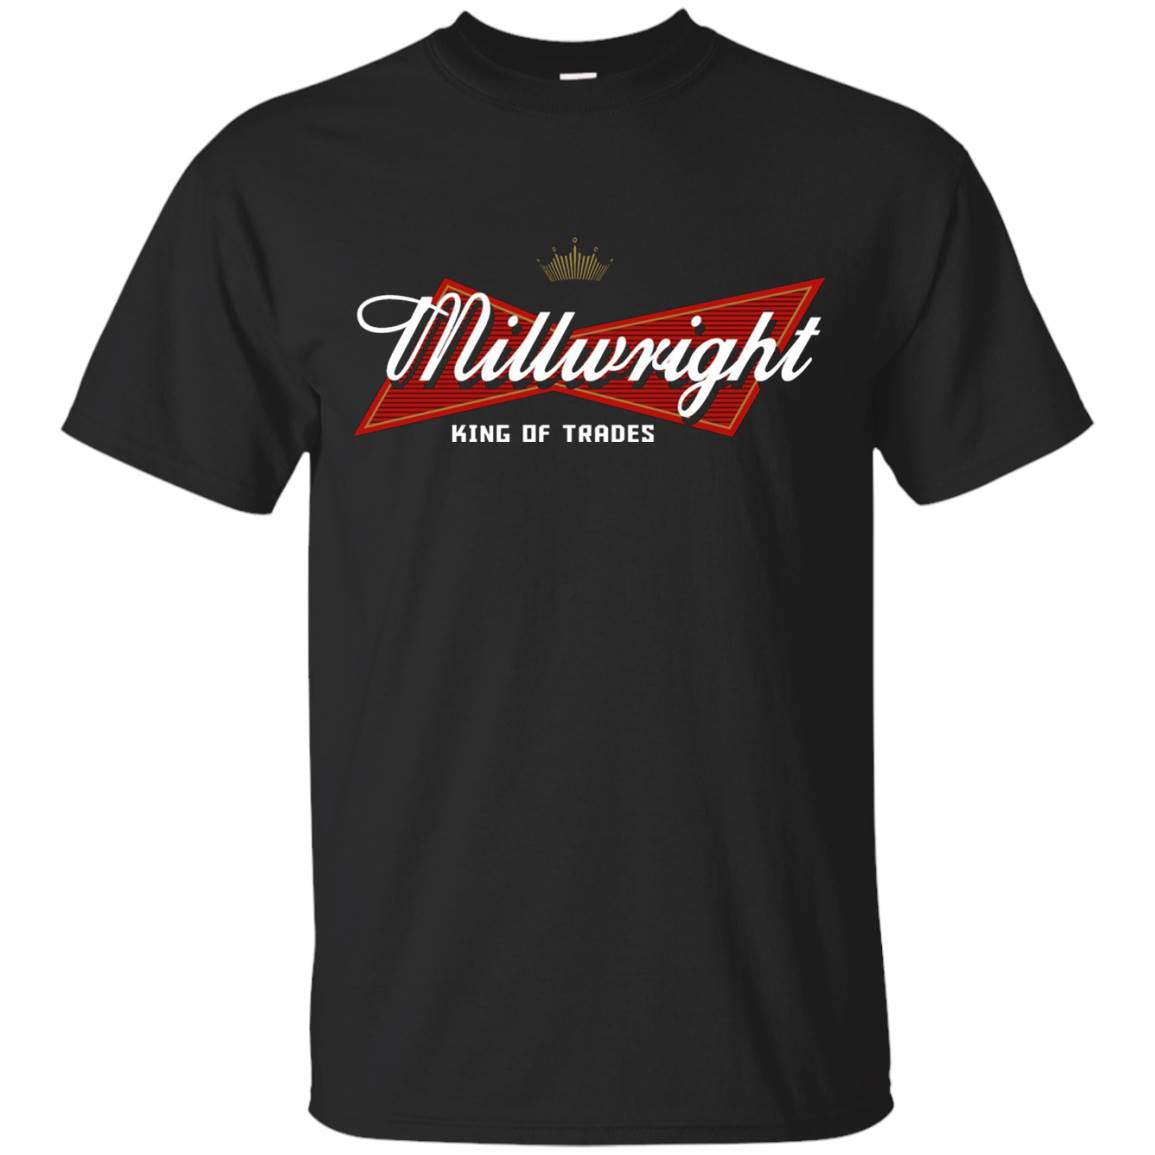 Millwright King of Trades T-shirt